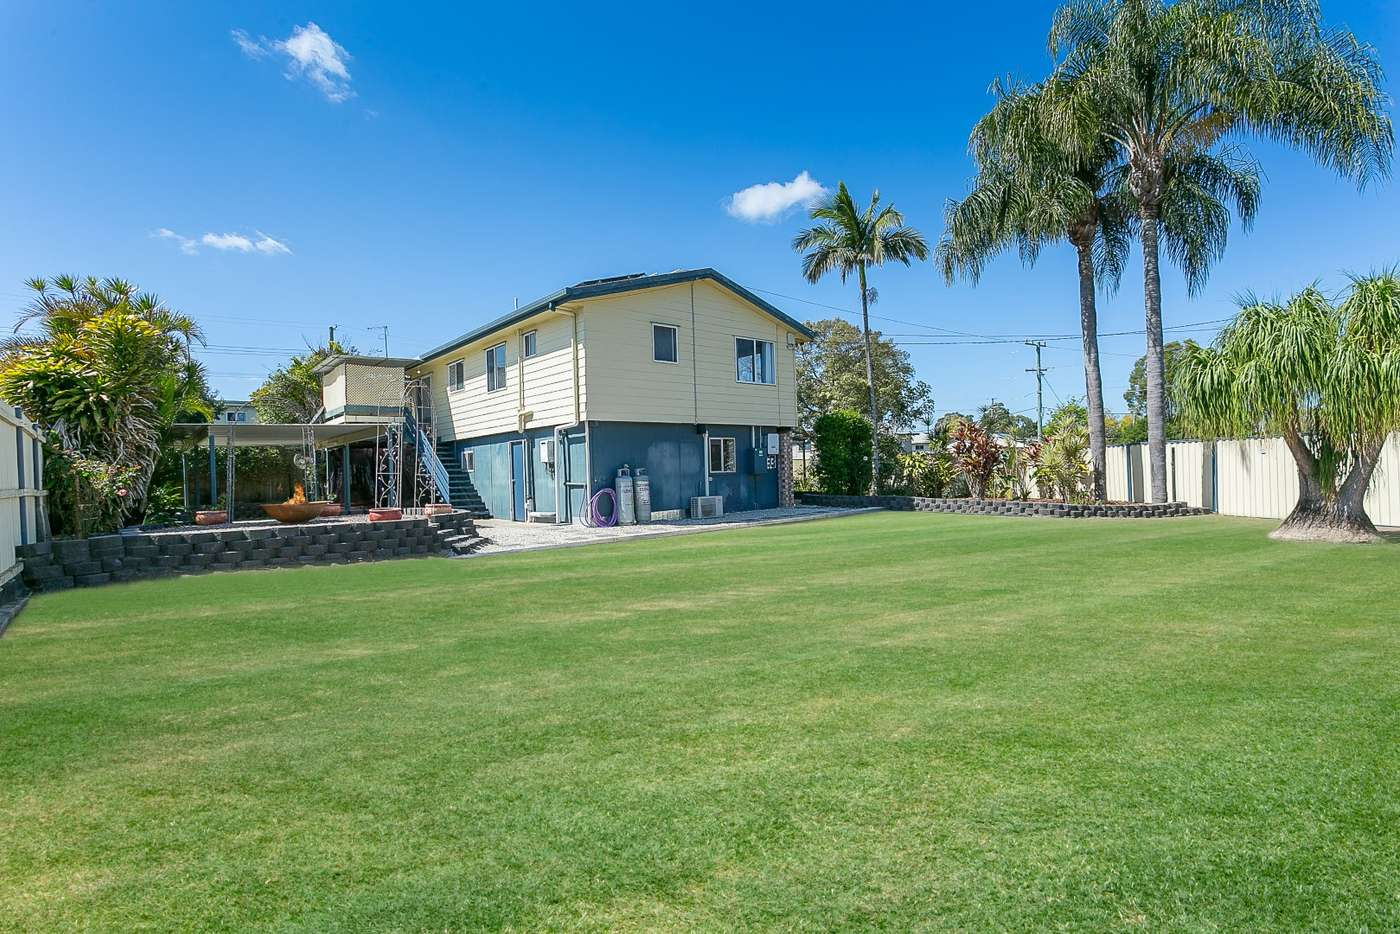 Main view of Homely house listing, 1 Madden Street, Silkstone QLD 4304